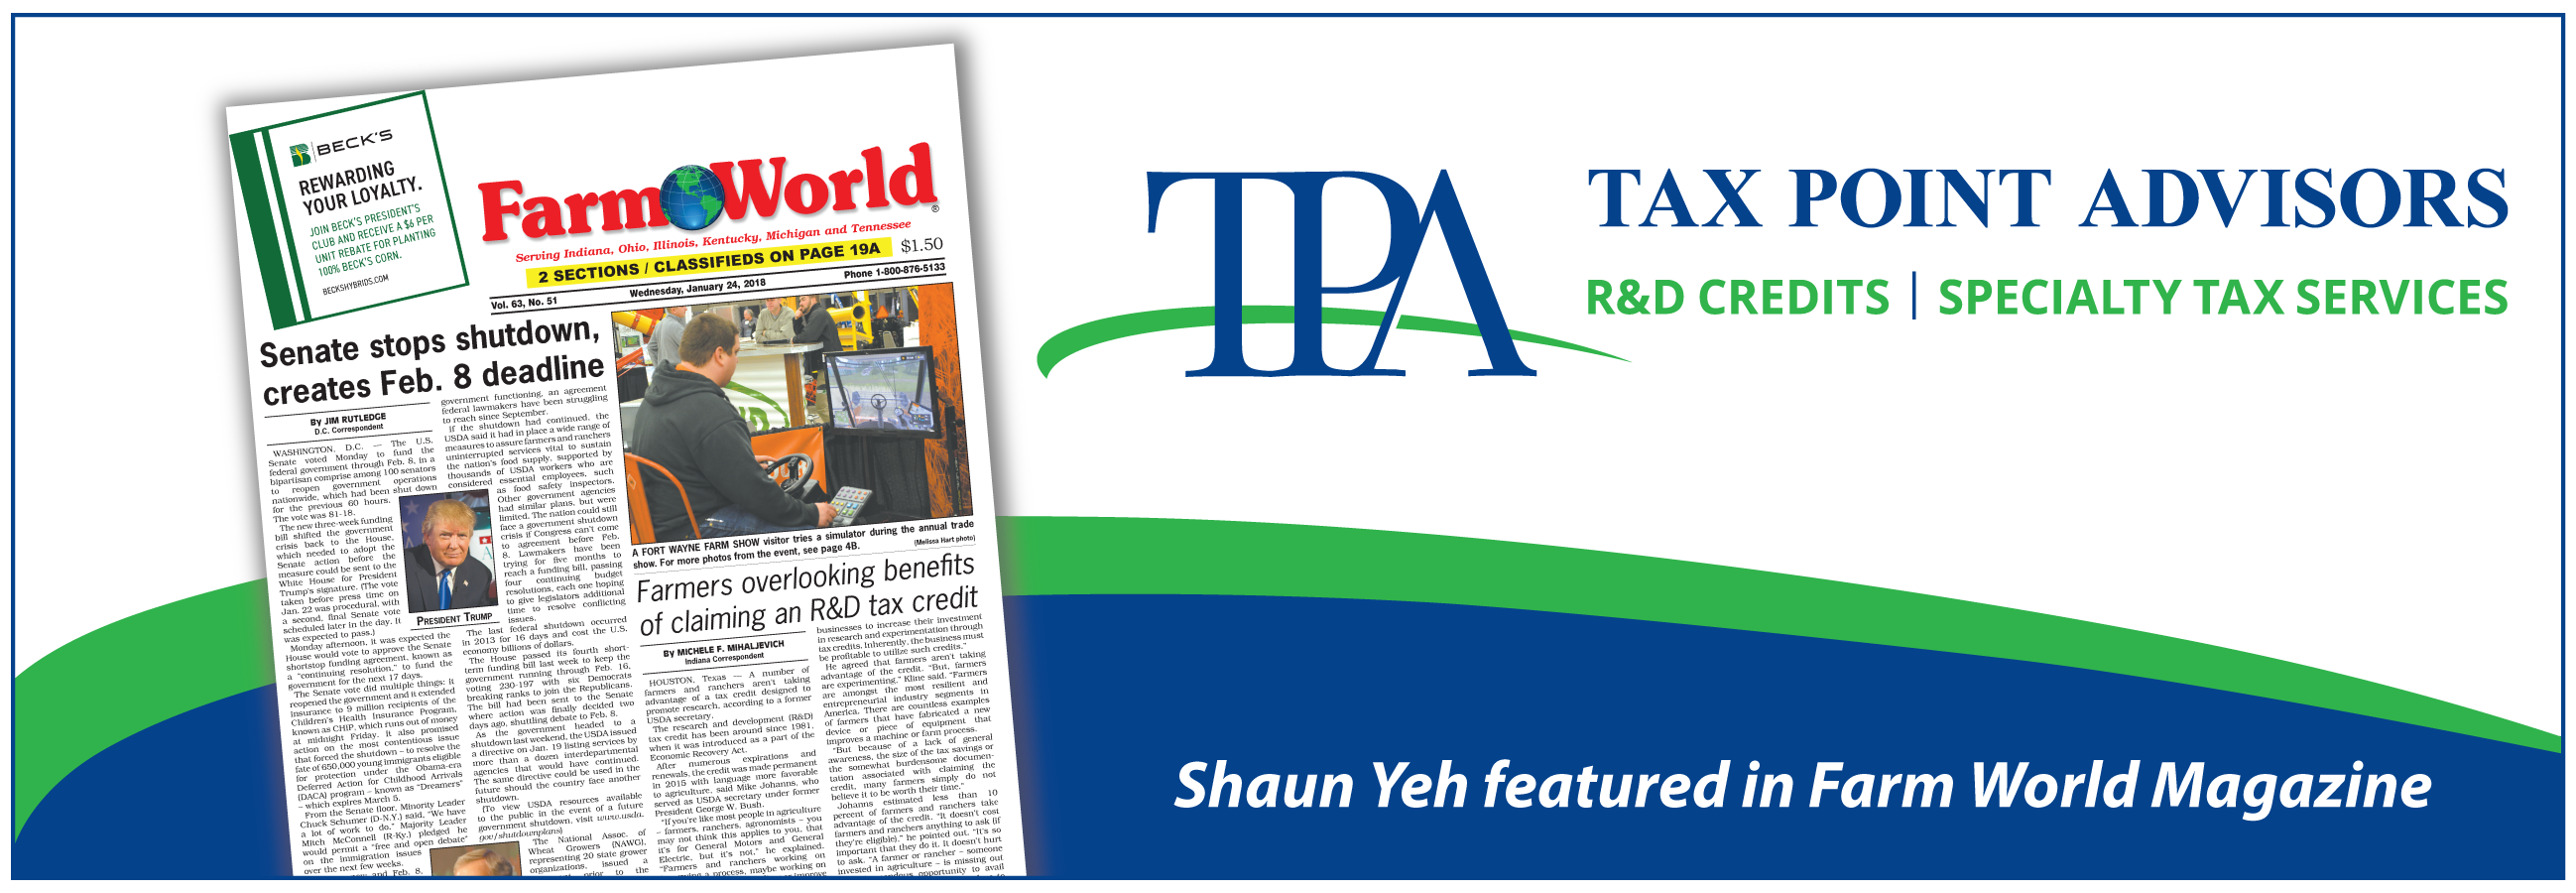 Tax Point Advisors featured in Farm World Magazine